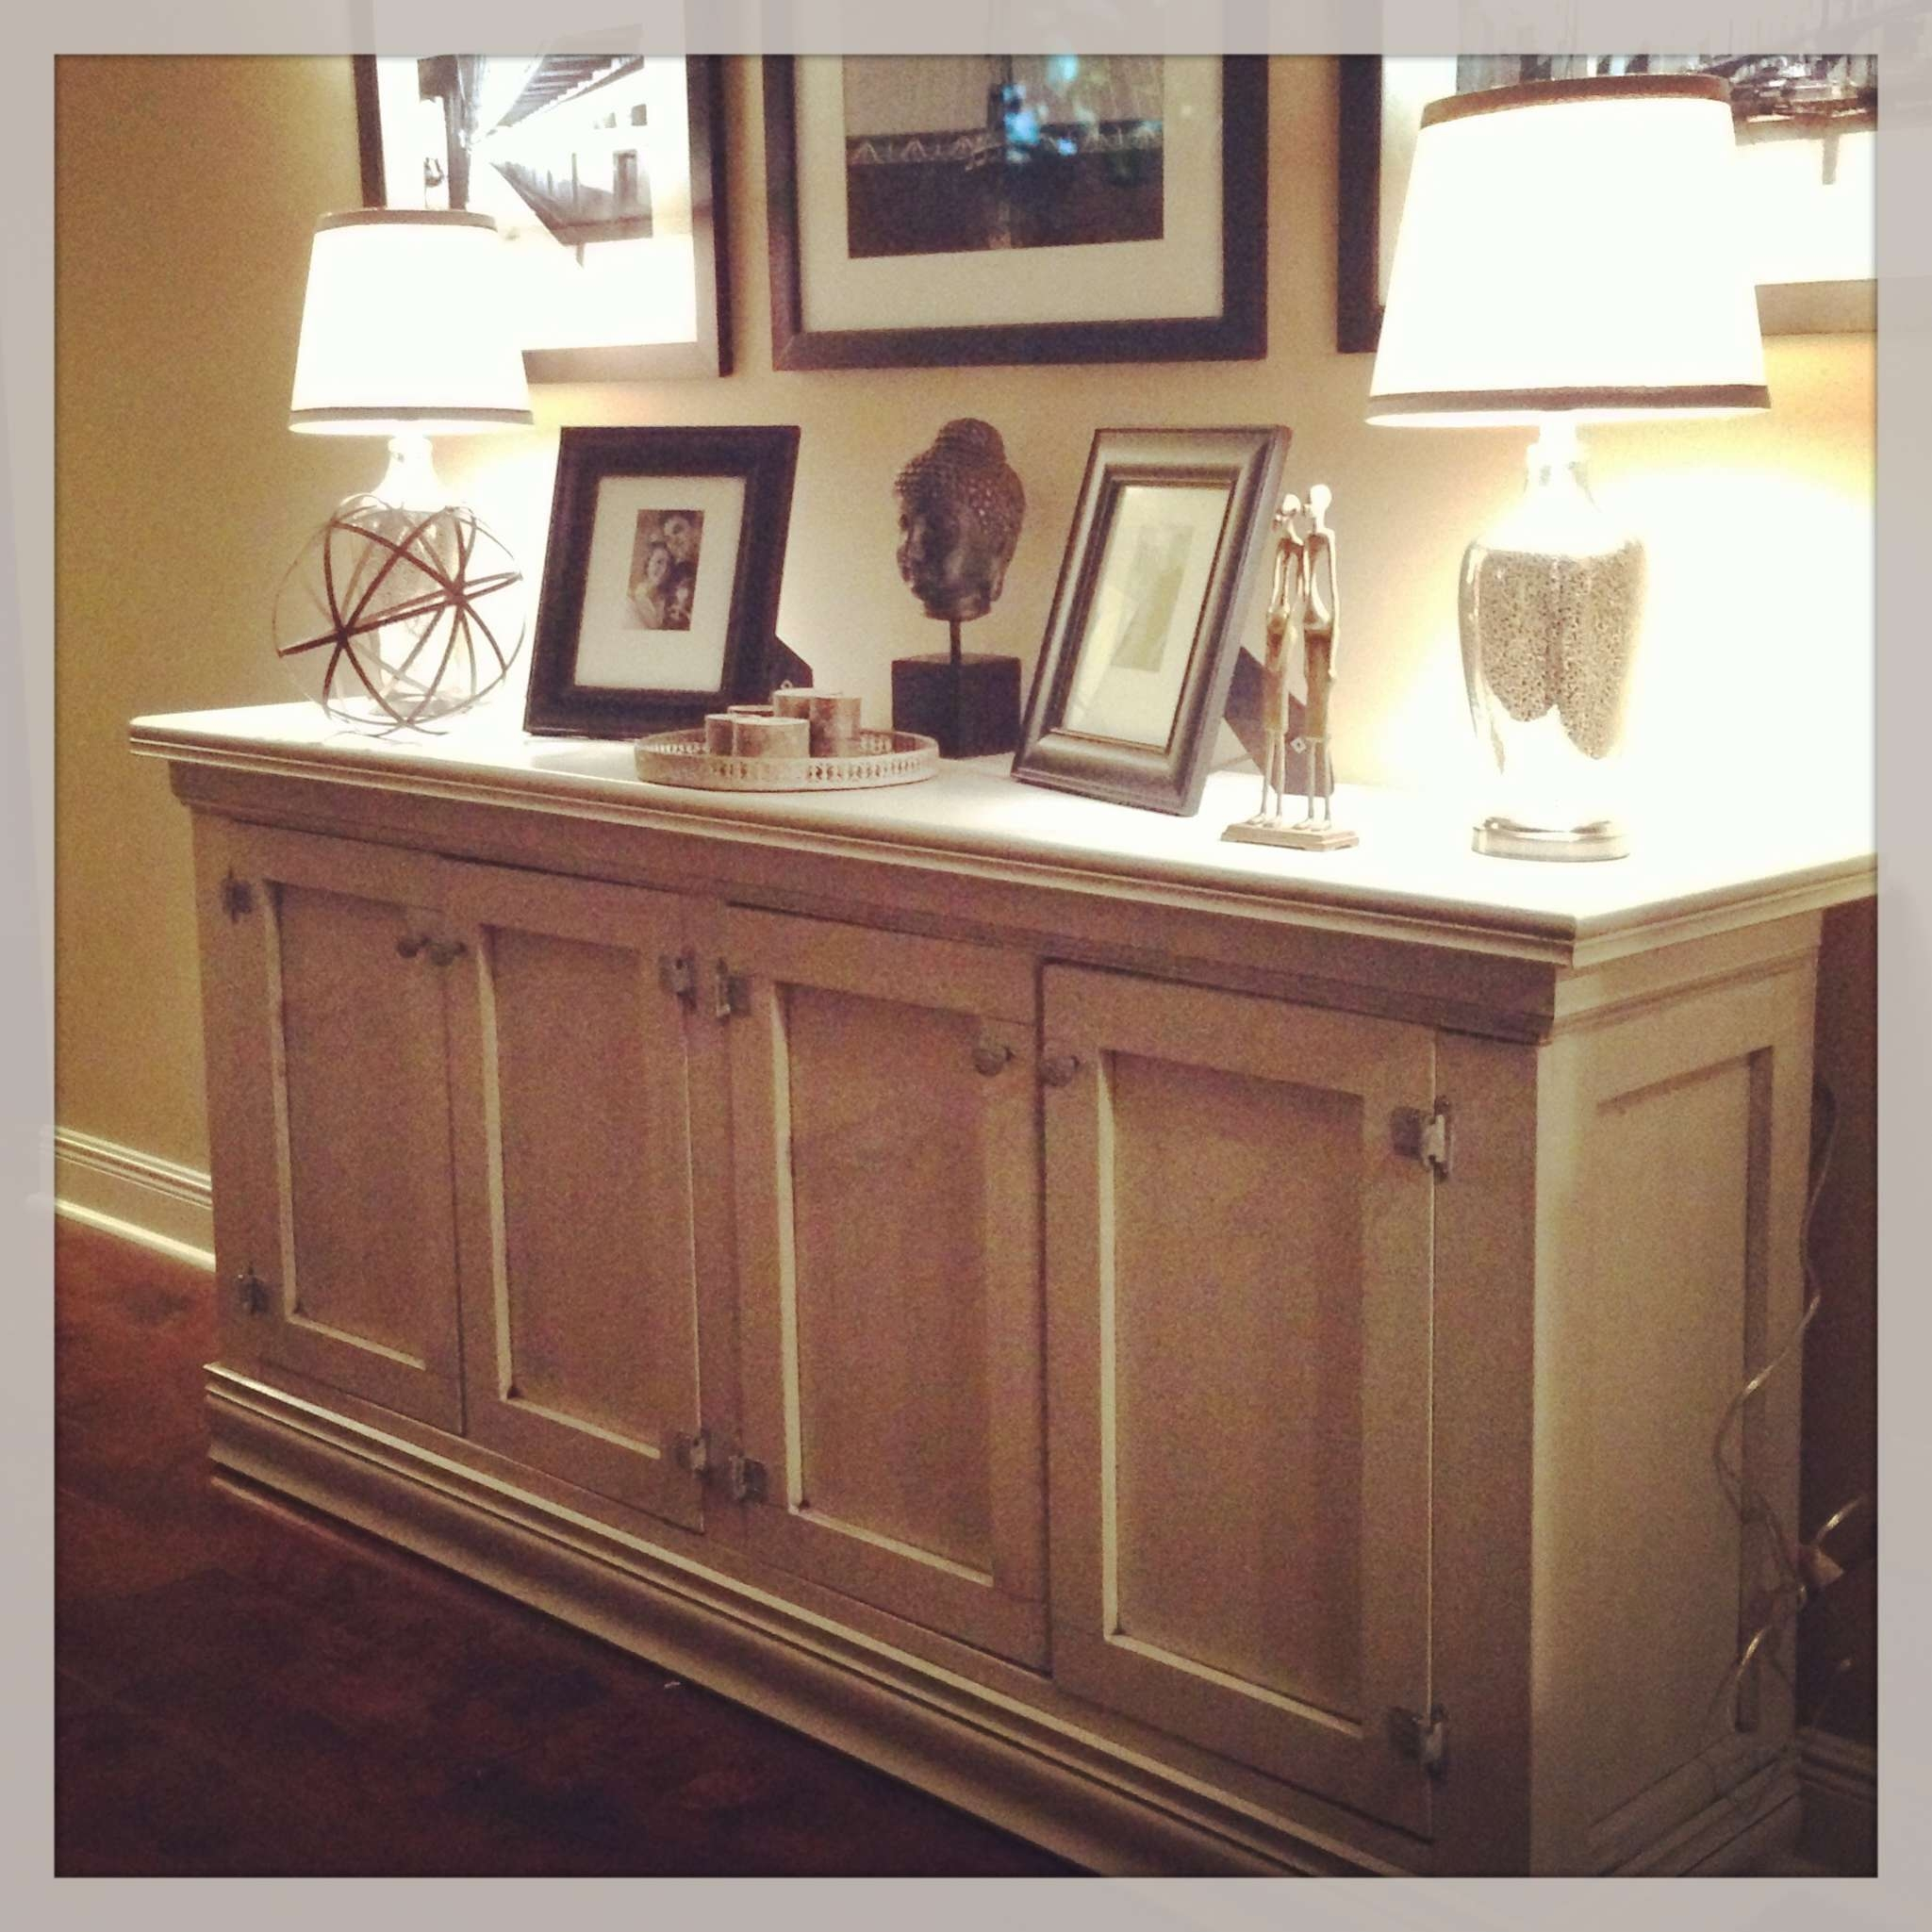 Wooden Buffet Table Choice Image – Table Design Ideas Pertaining To Wooden Sideboards And Buffets (View 3 of 20)